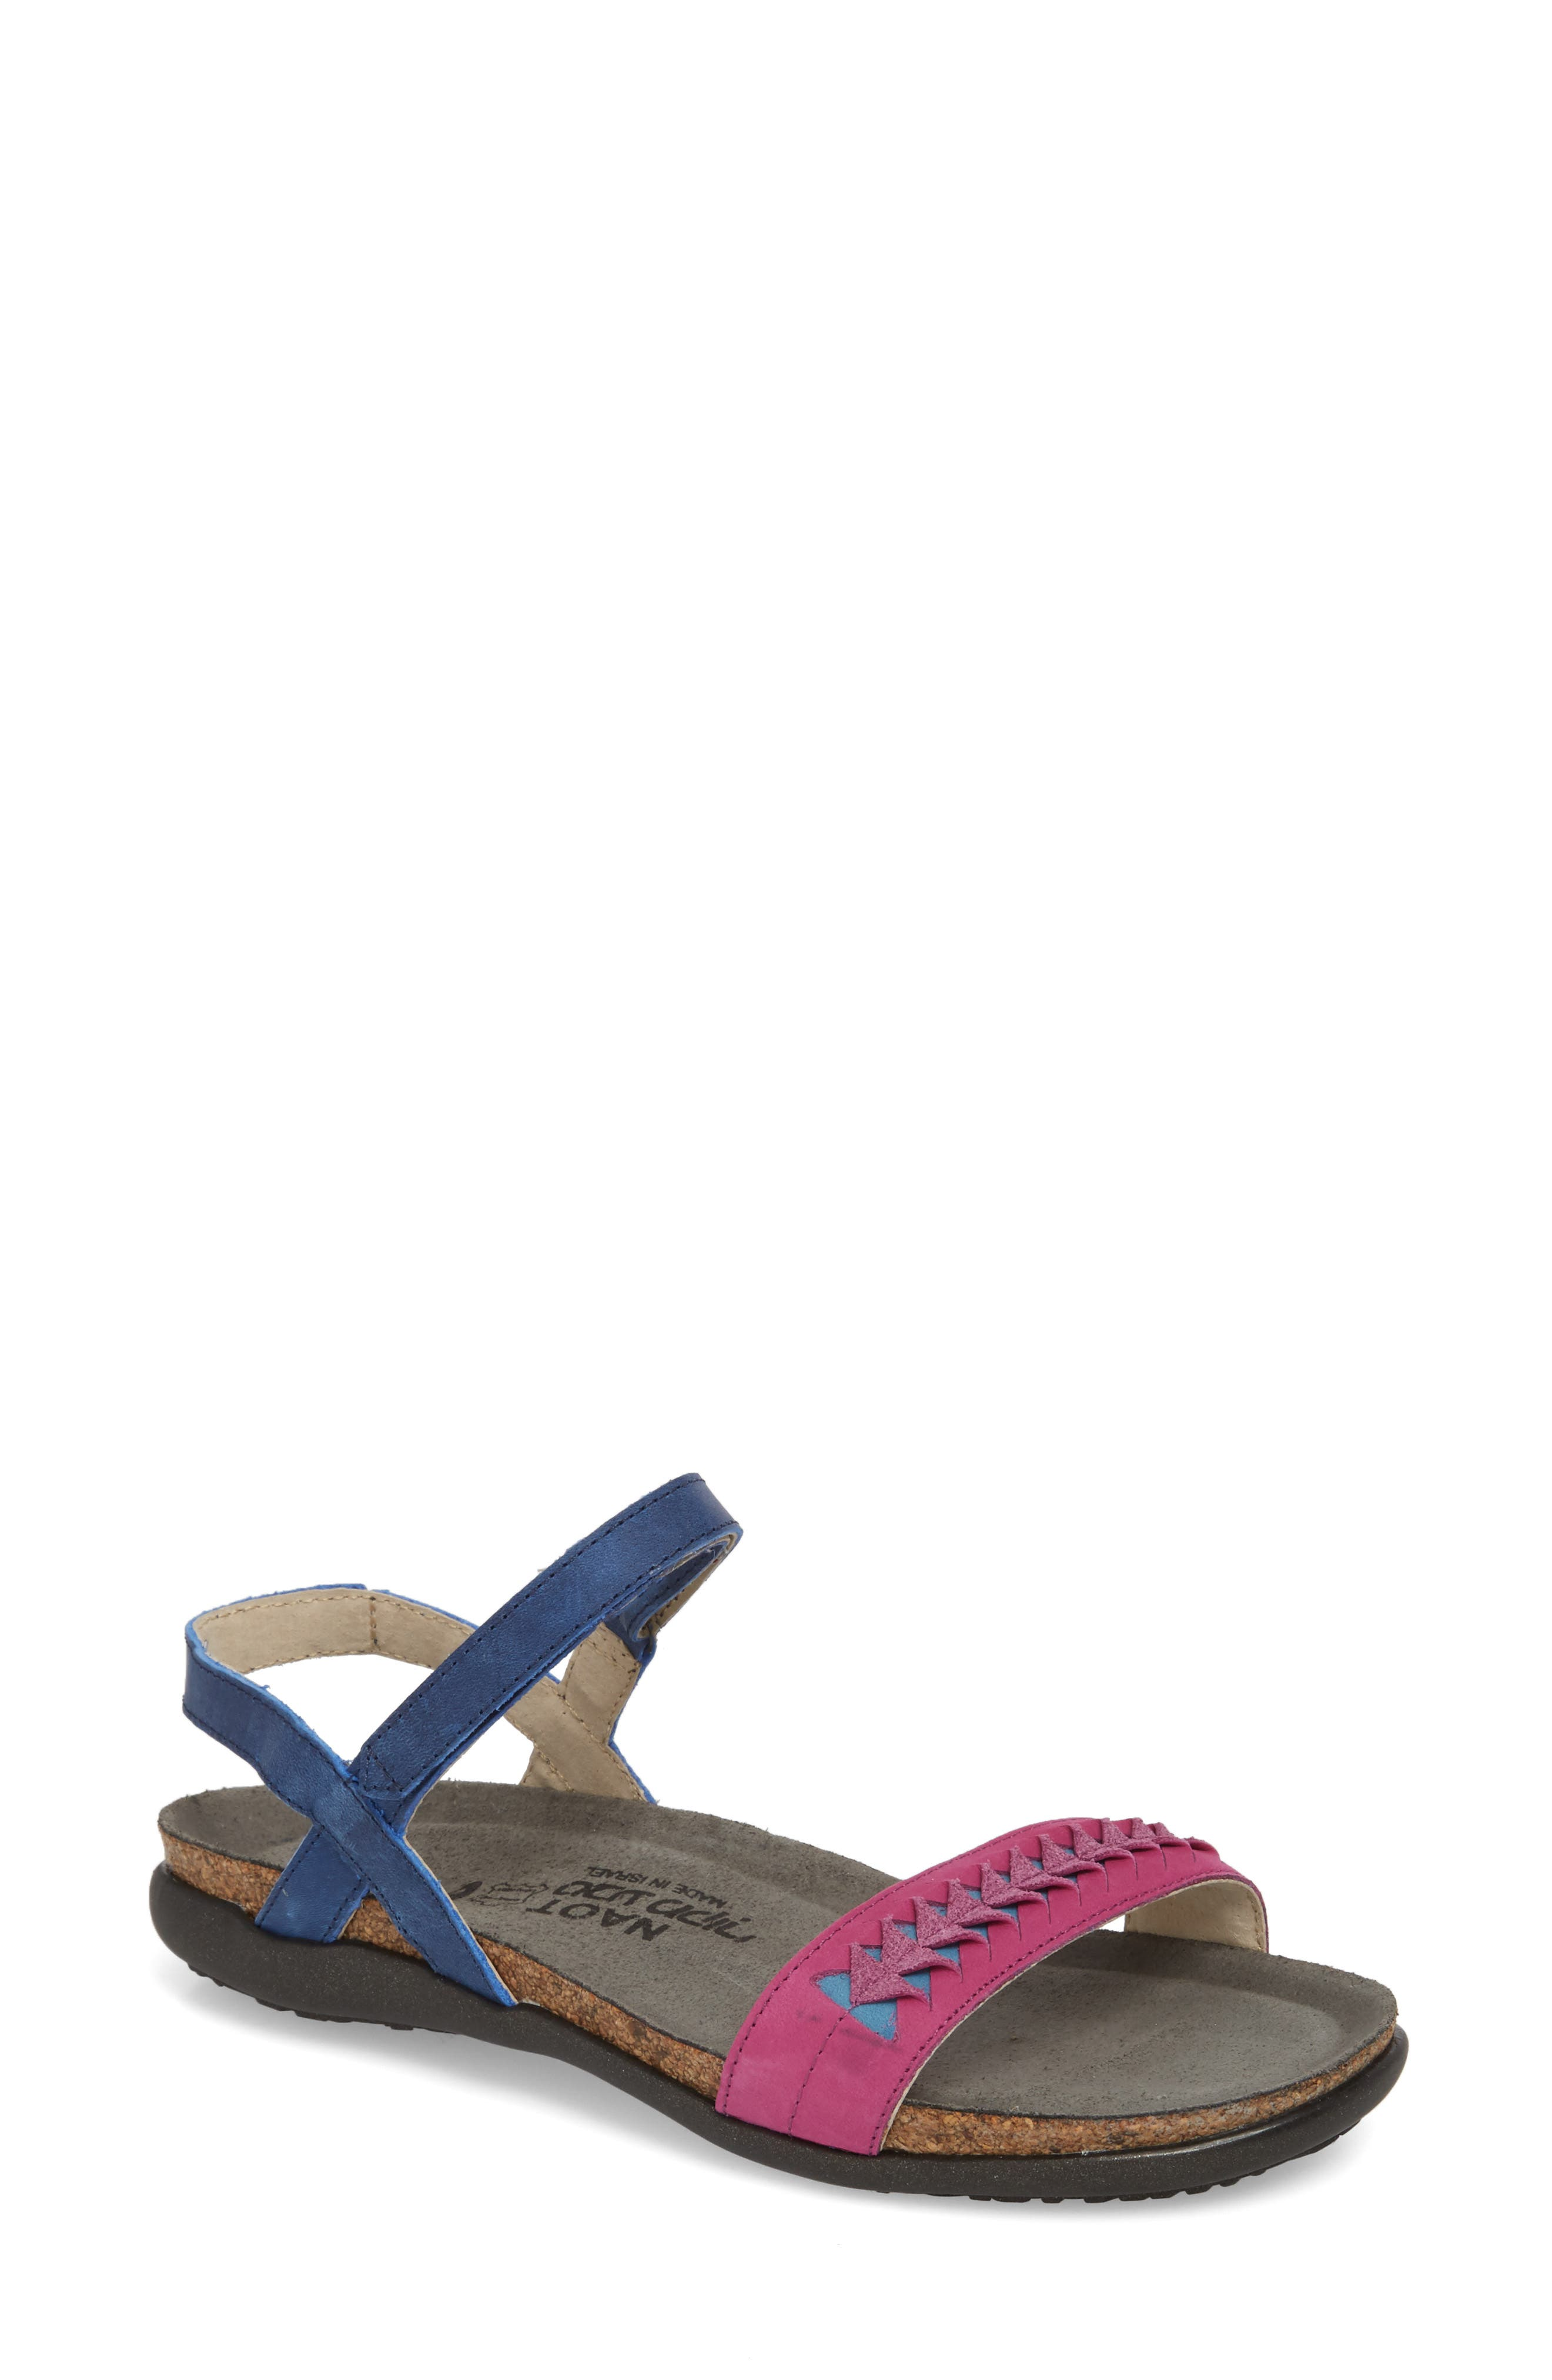 Marble Sandal,                         Main,                         color, Oily Blue Nubuck